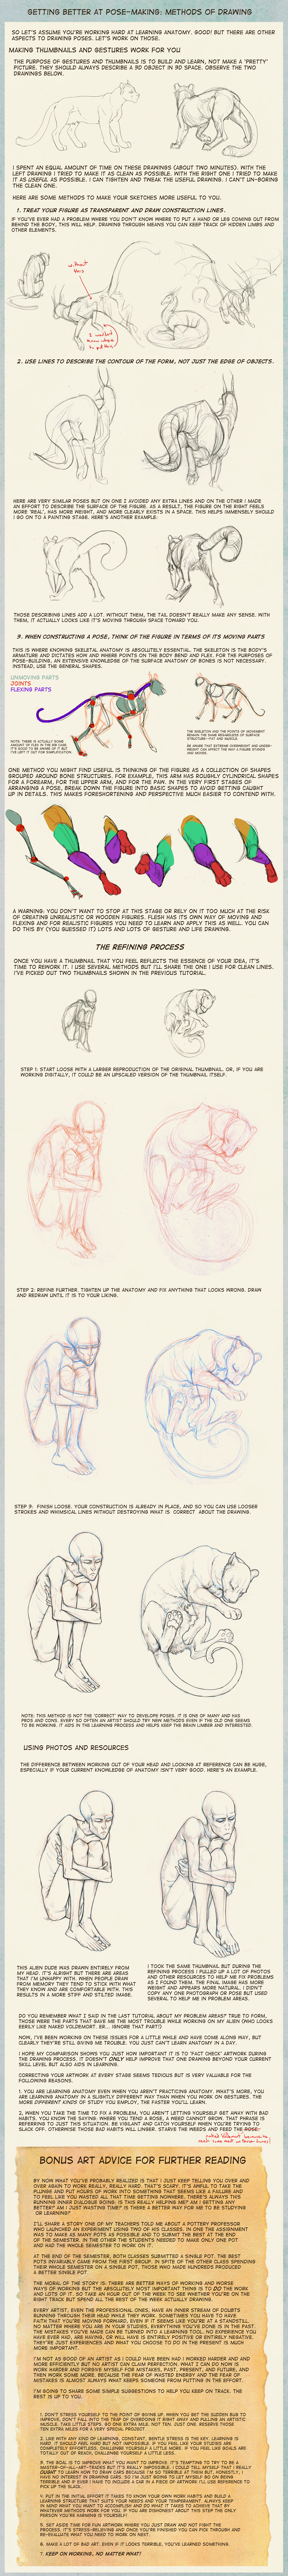 Poses: methods of drawing by hibbary